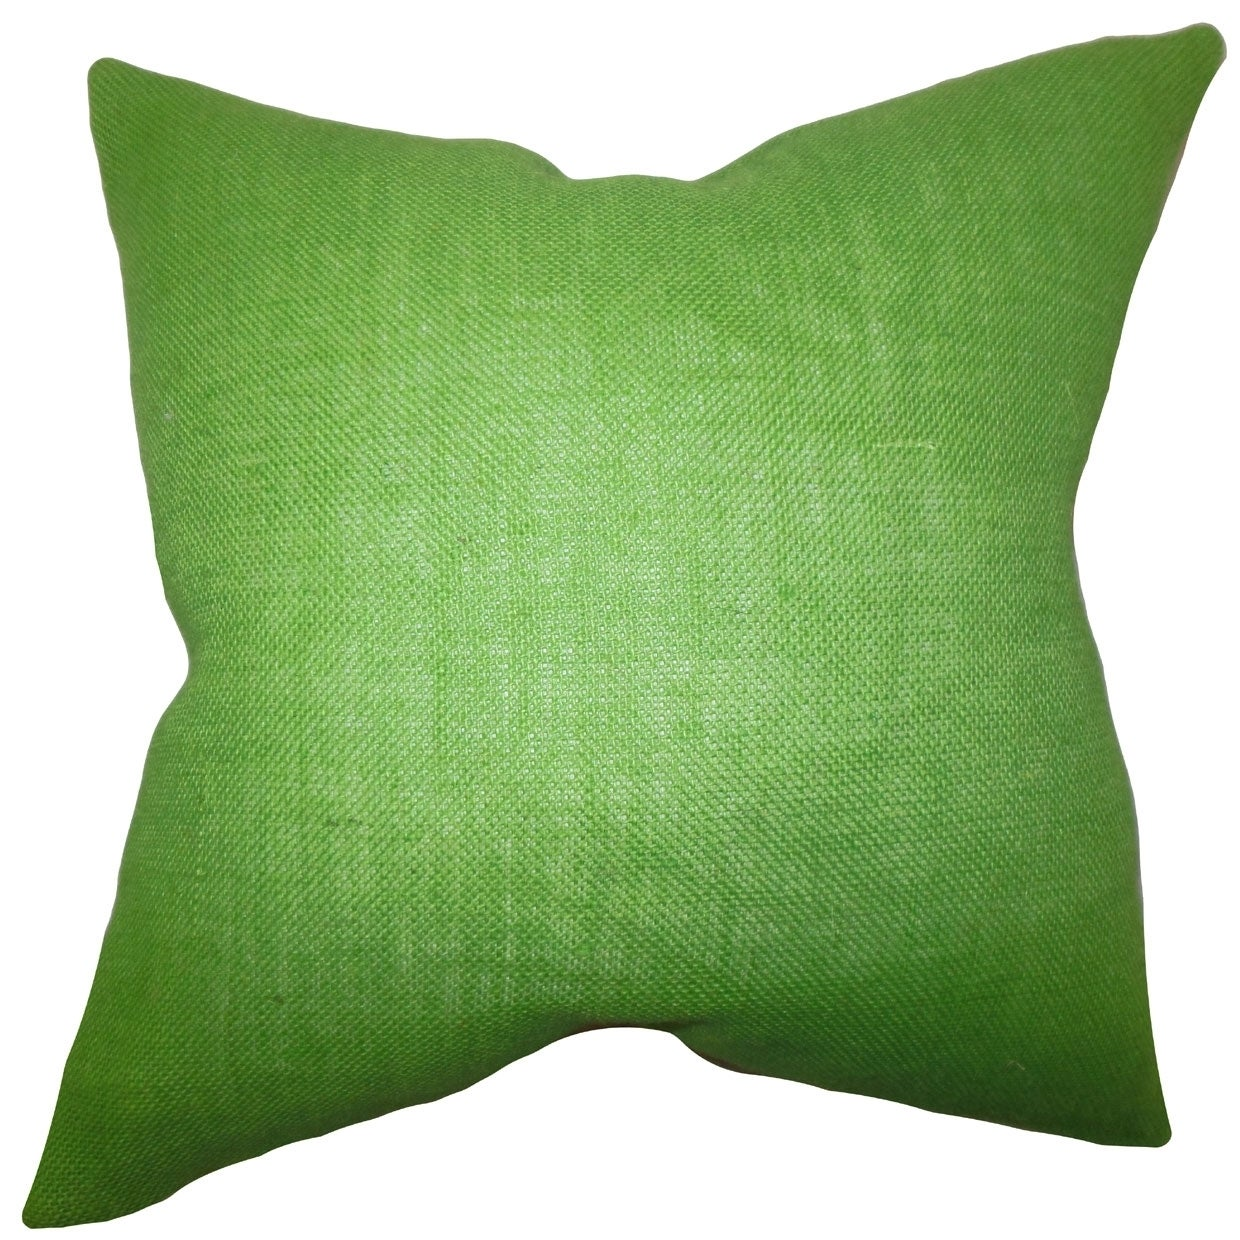 Ellery Apple Green Solid Down Filled Throw Pillow (20-Inch)